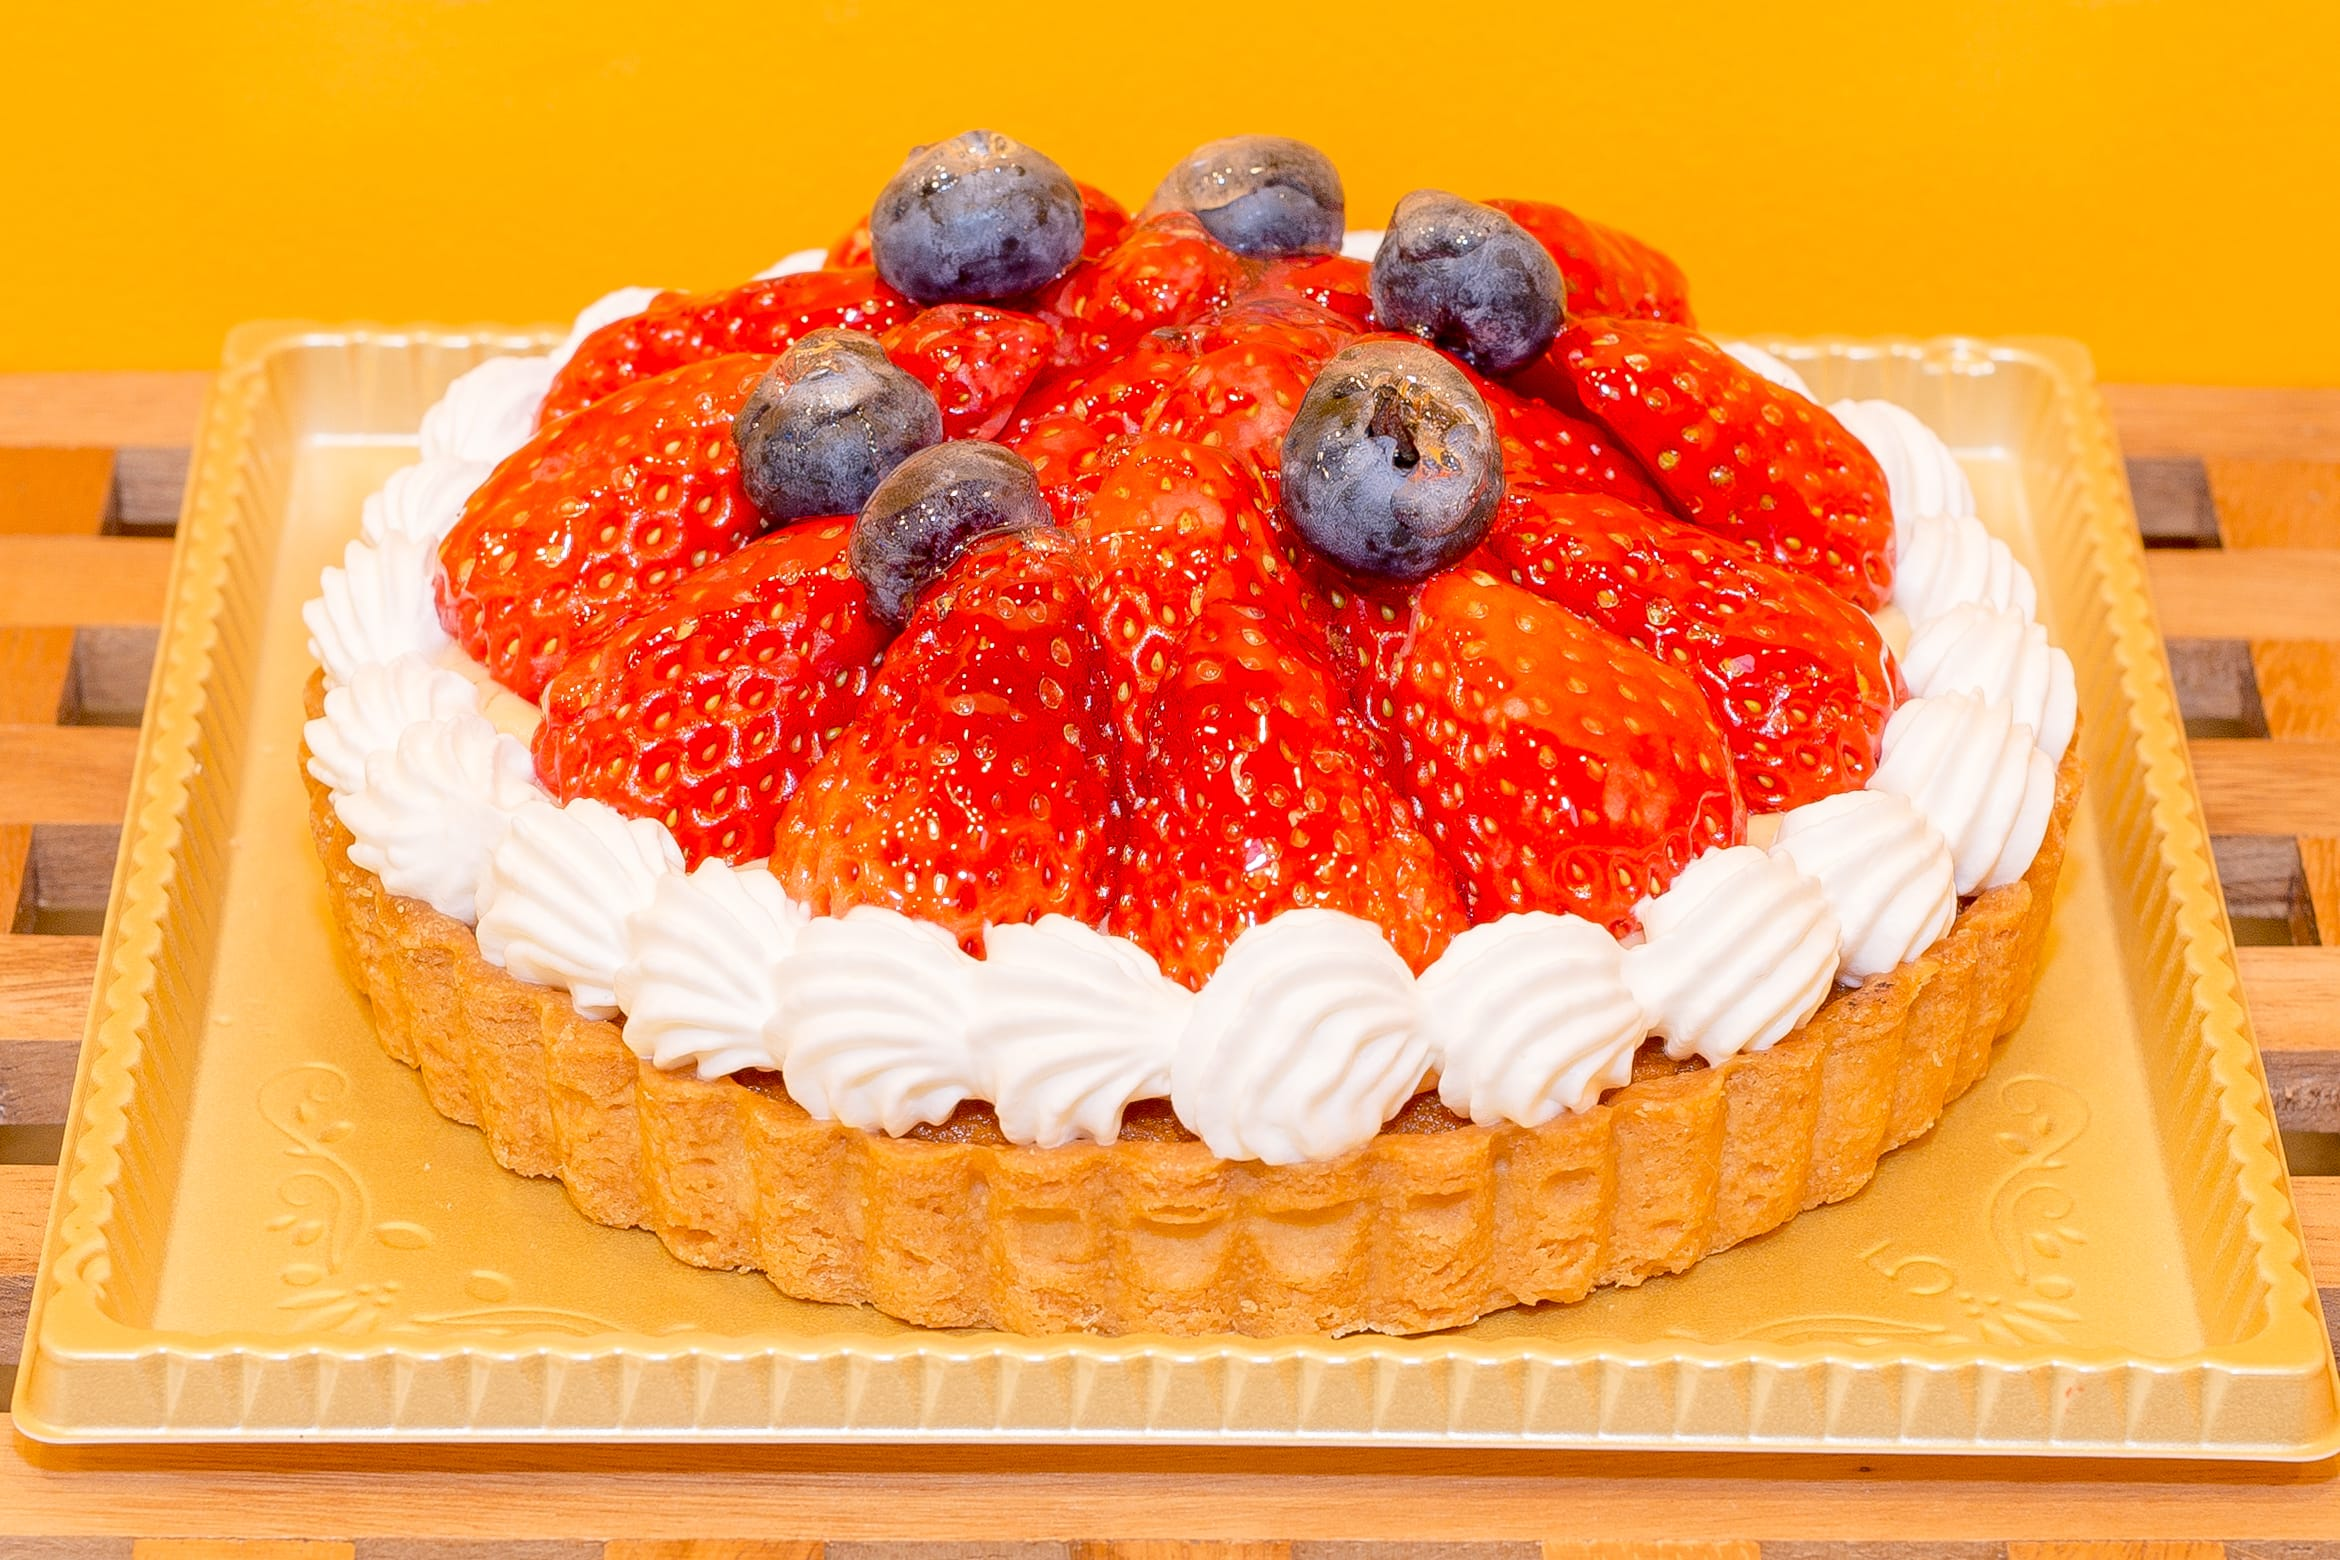 Strowberry Tart Hall Cake